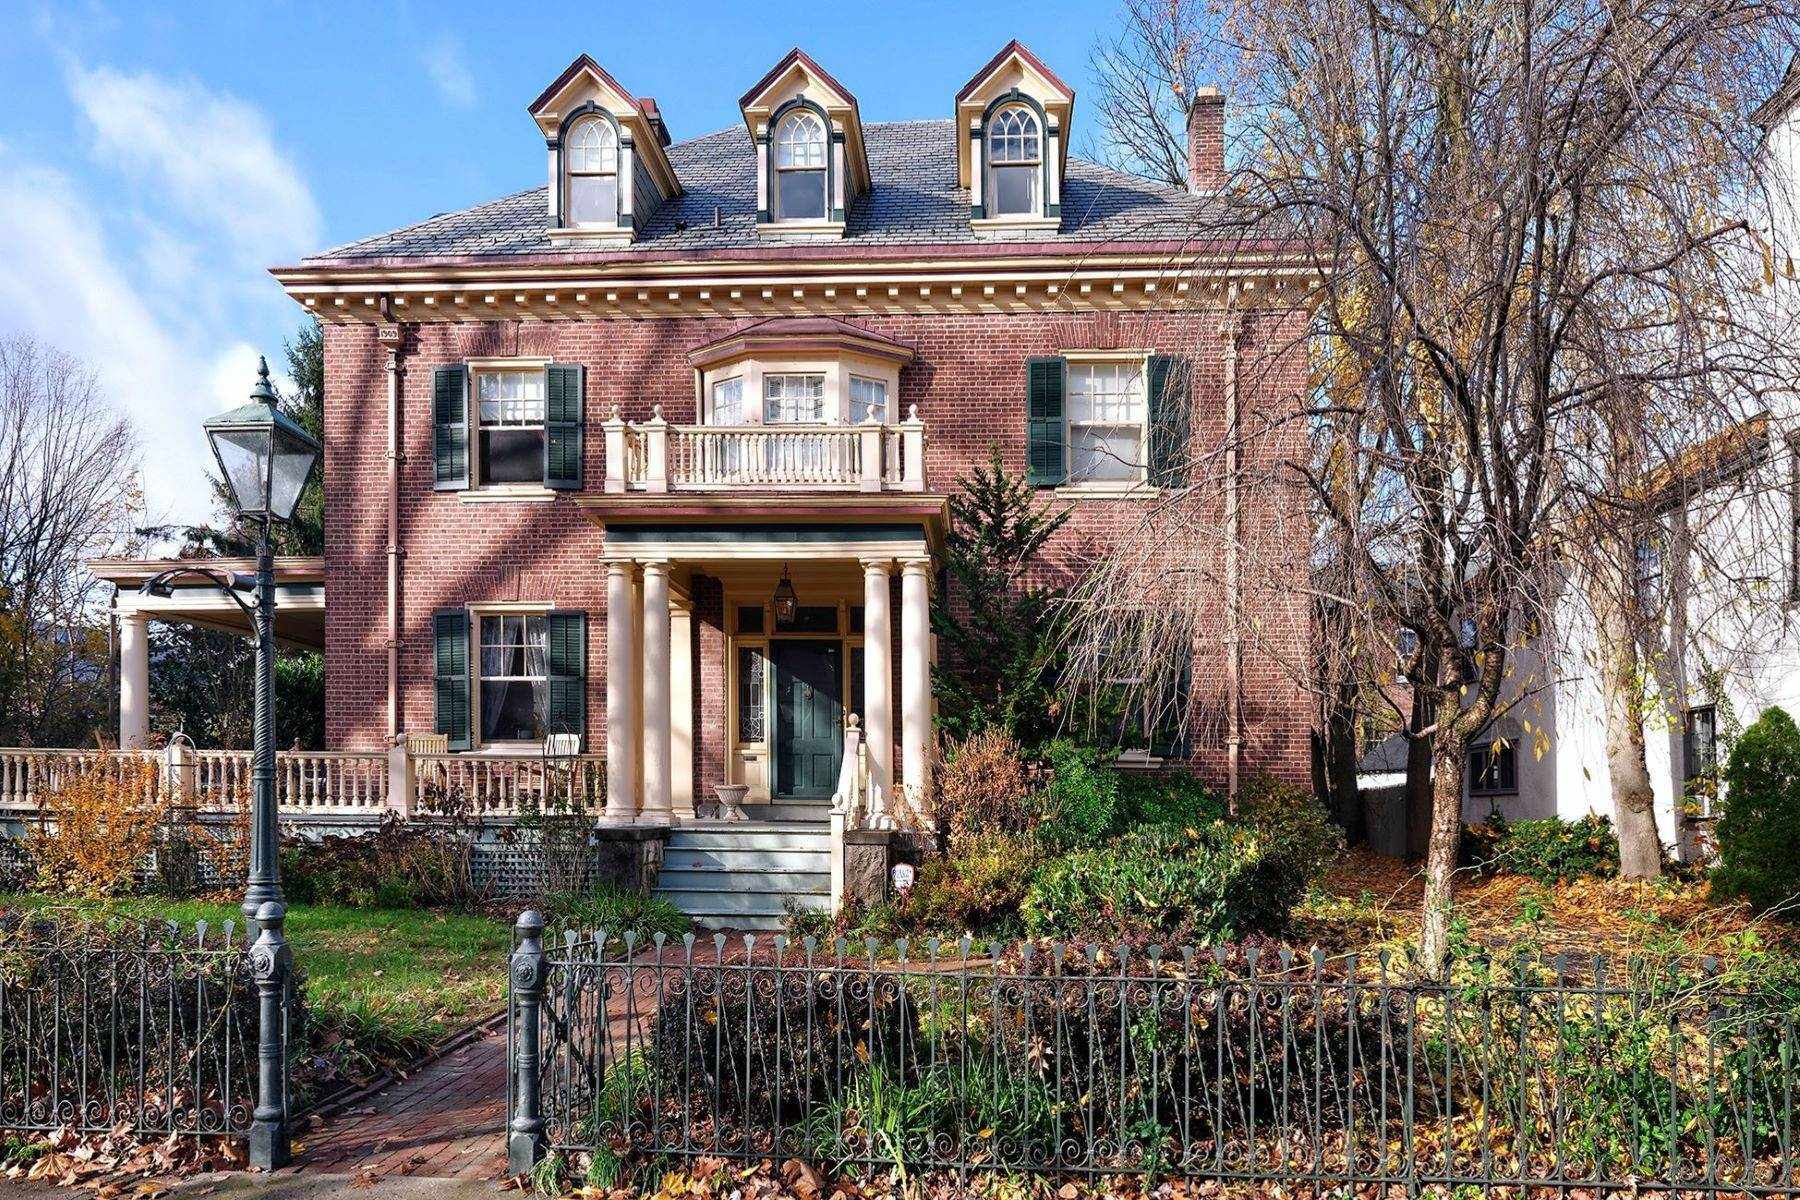 Single Family Homes for Sale at A Once In A Lifetime Home 42 York Street Lambertville, New Jersey 08530 United States